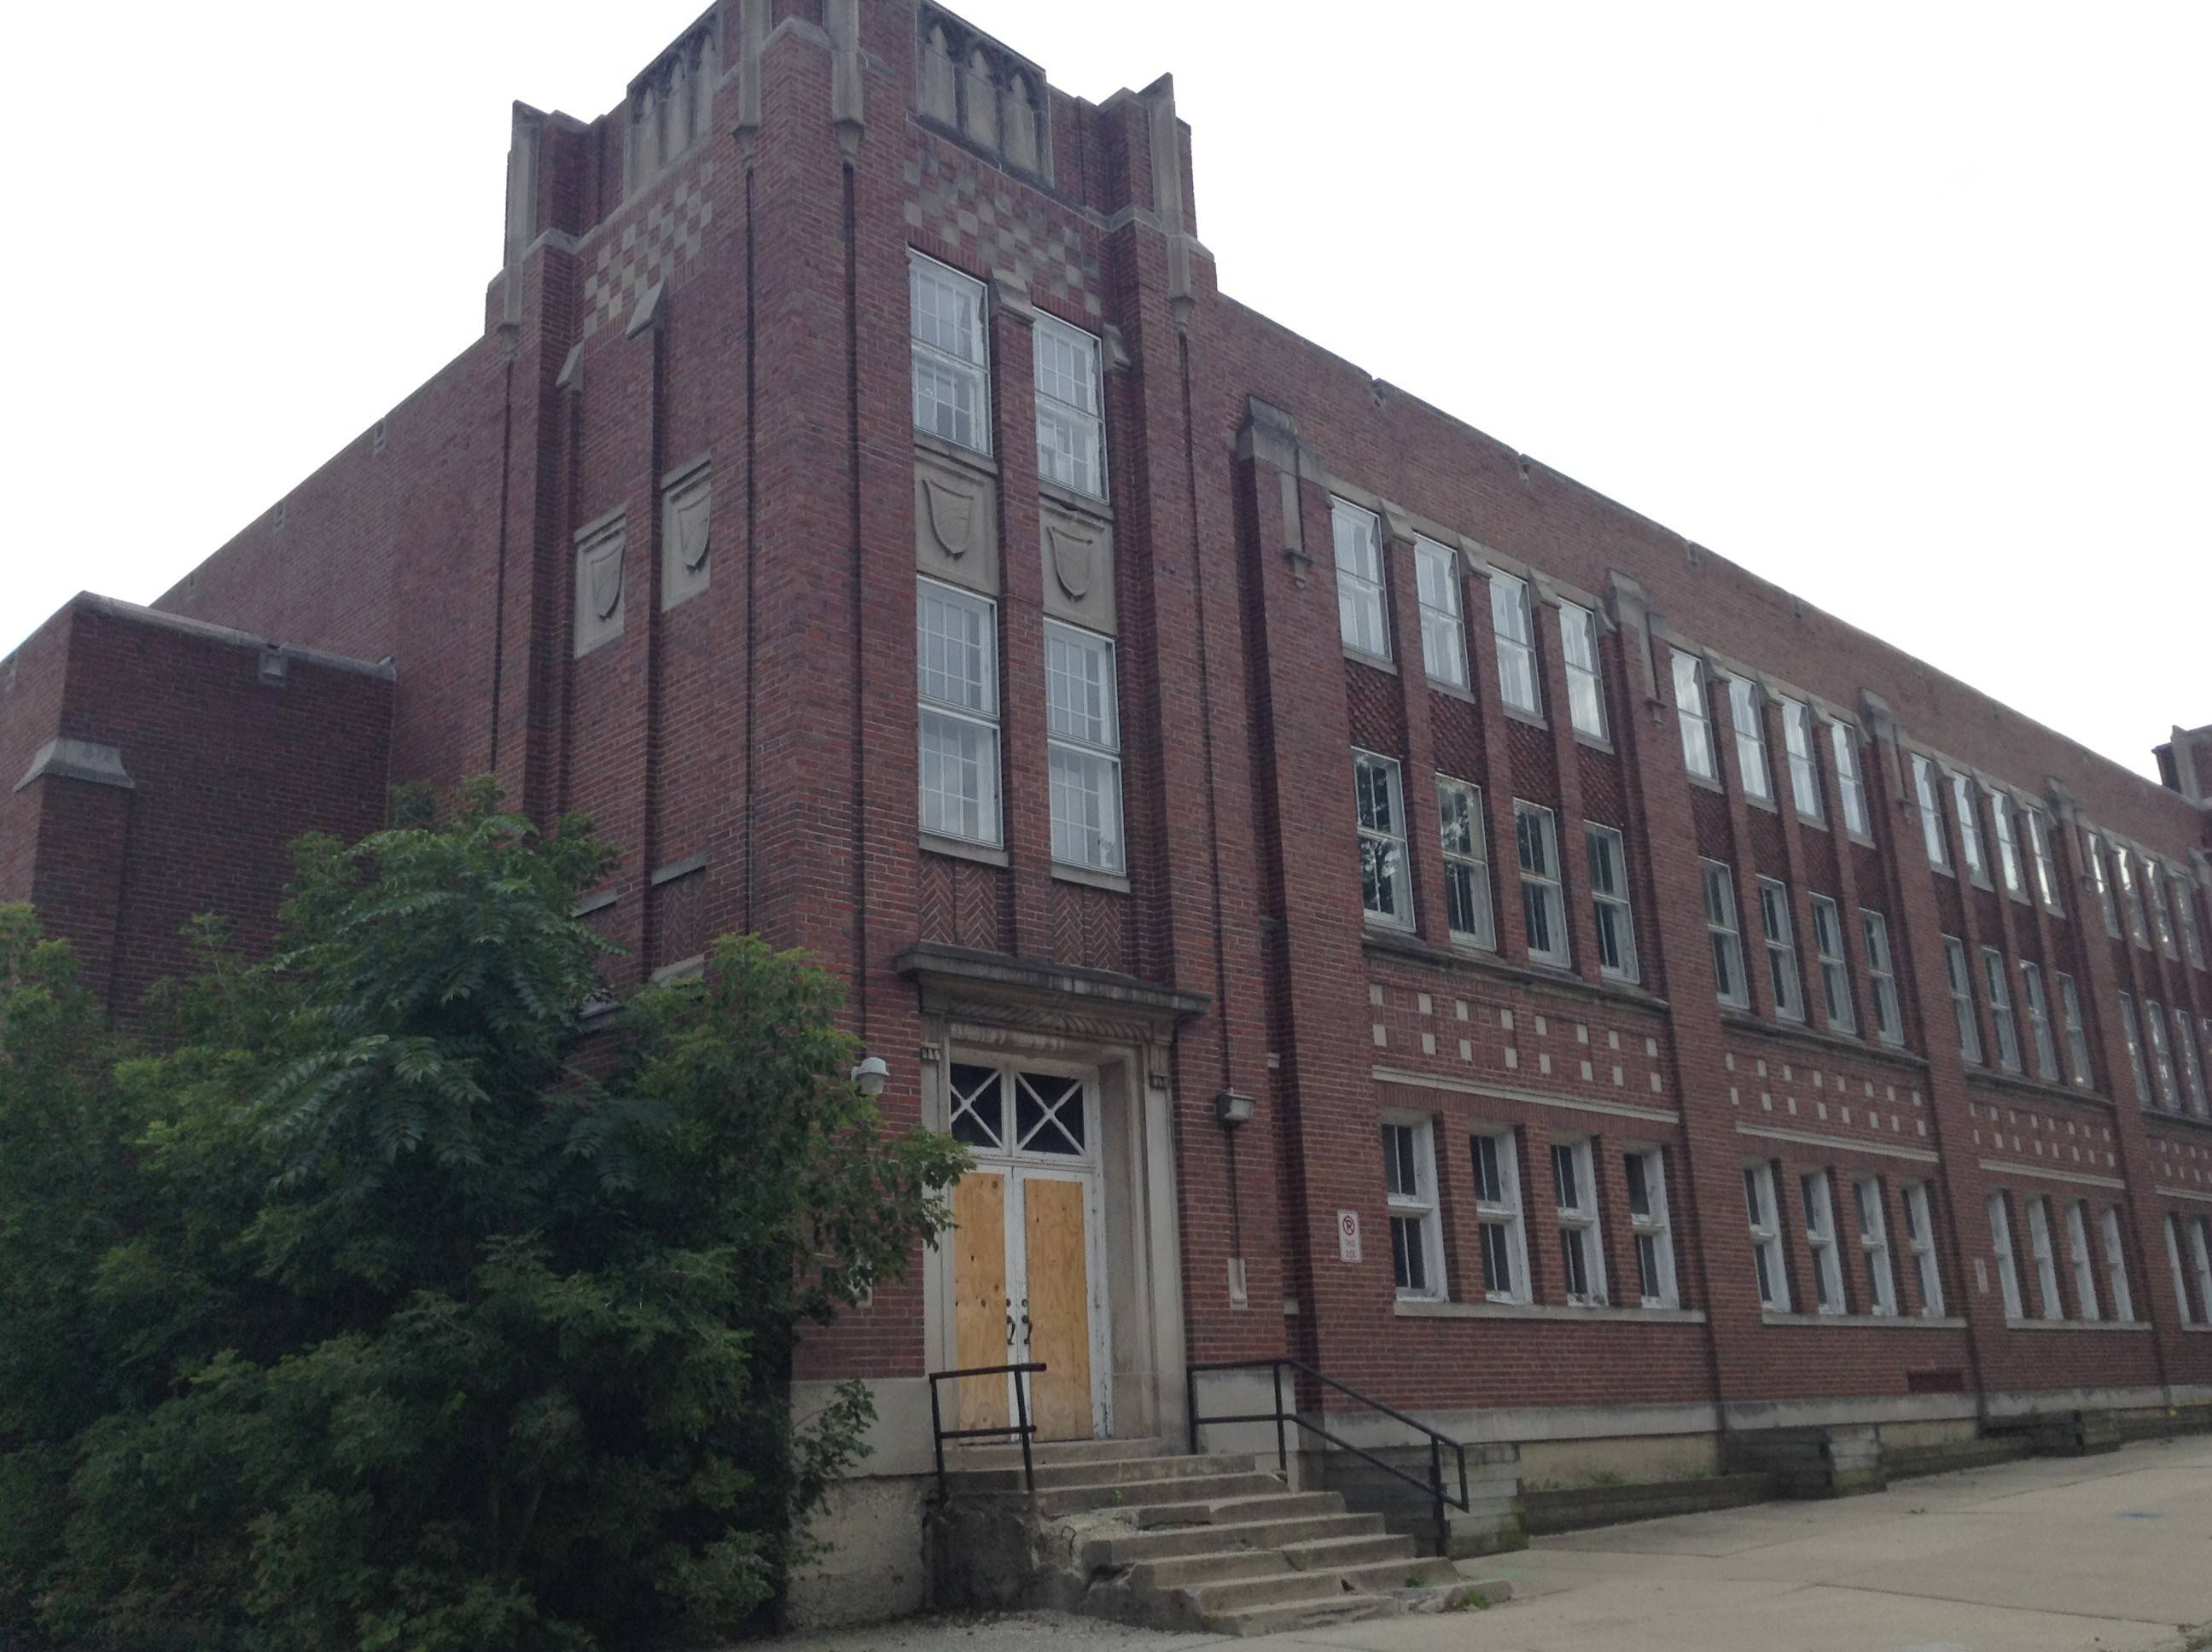 The original Libertyville High School building, shown here before its 2014 demolition, opened in 1917.